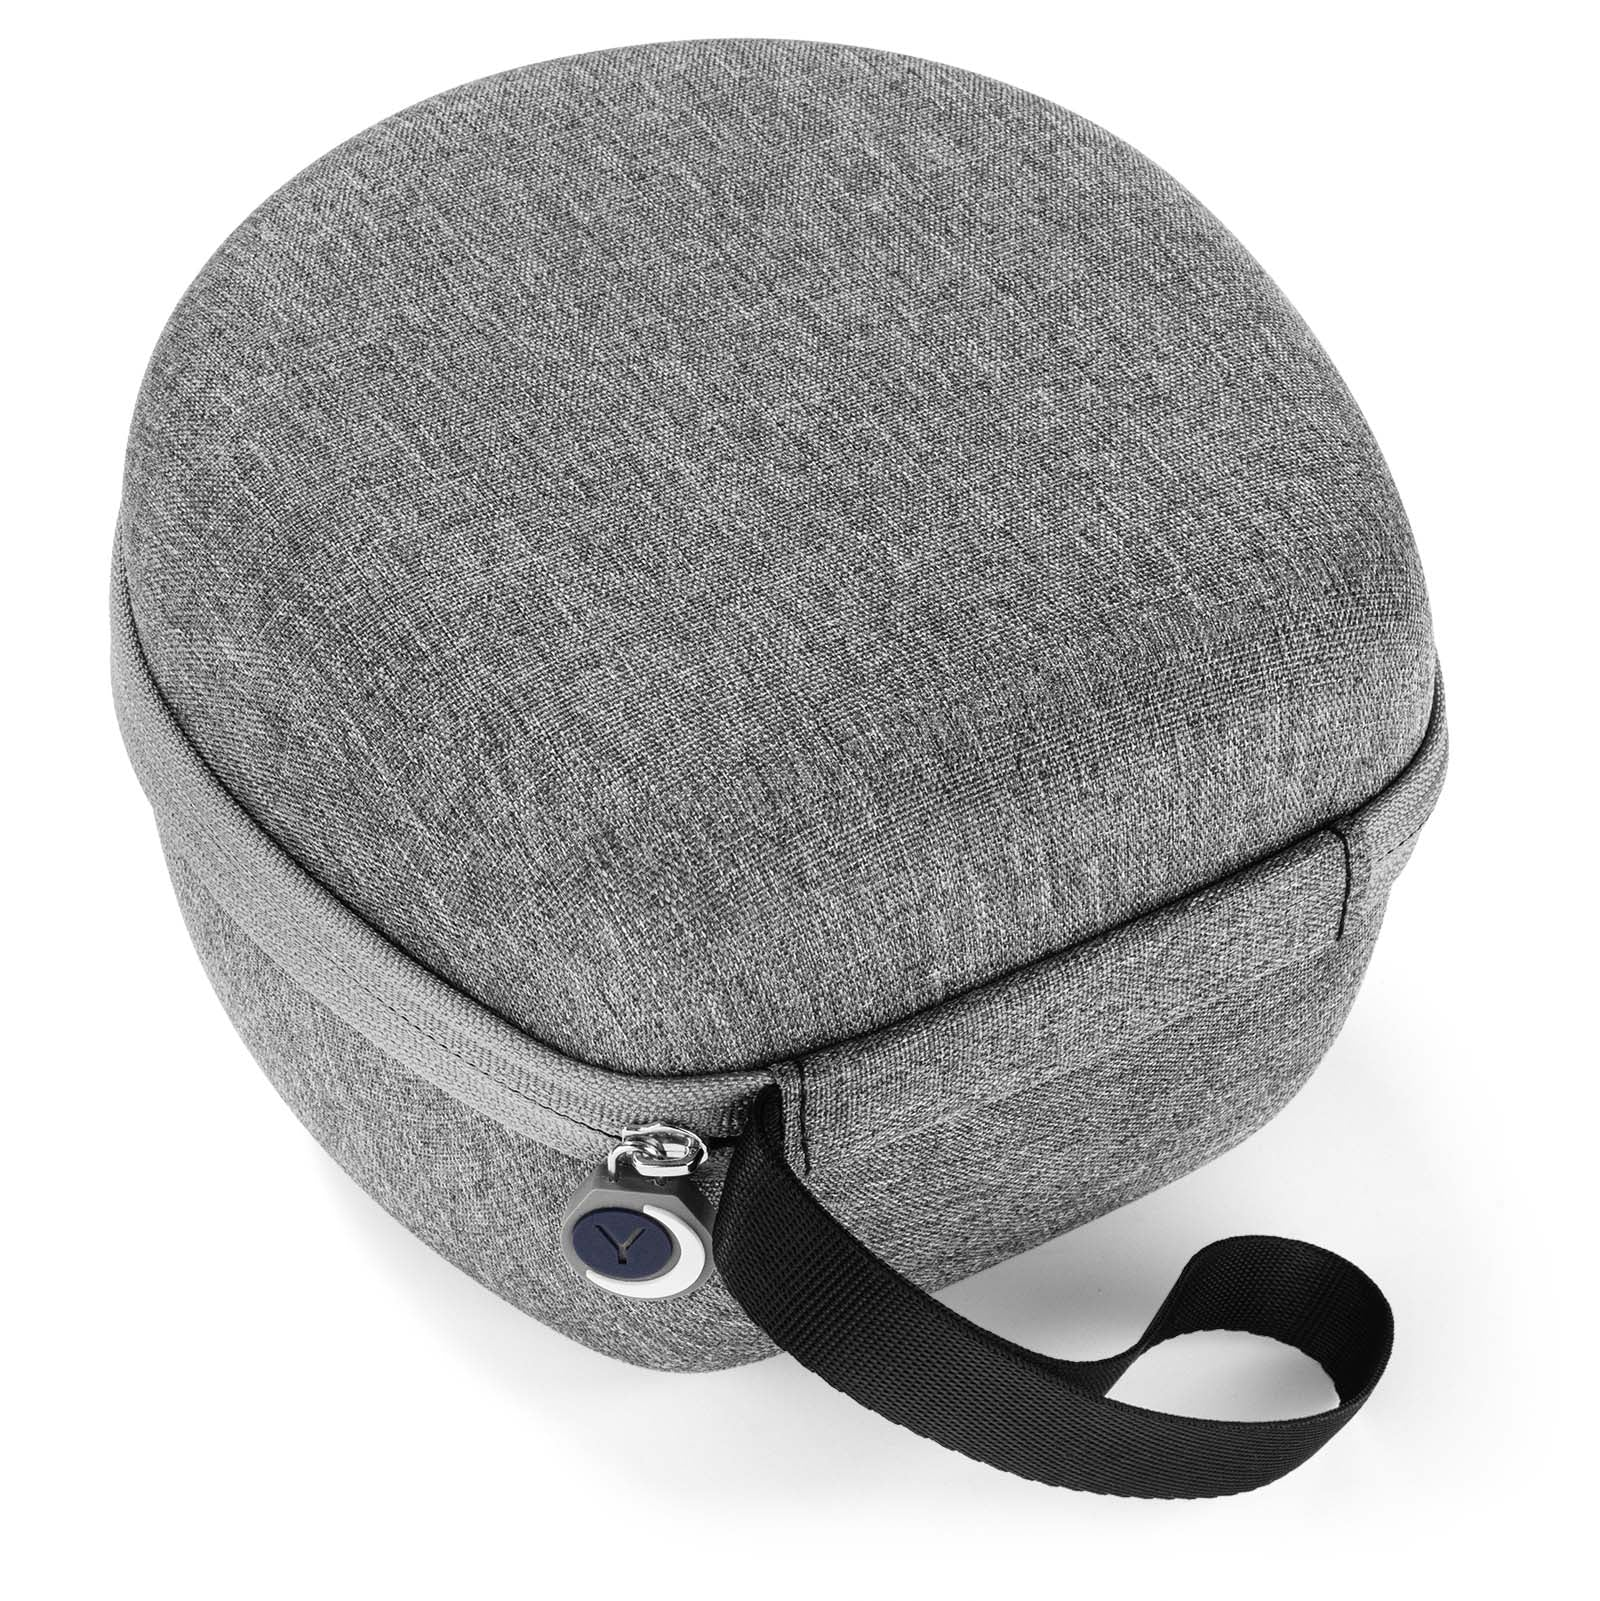 Dohm Classic White Sound Machine and Travel Case | Yogasleep